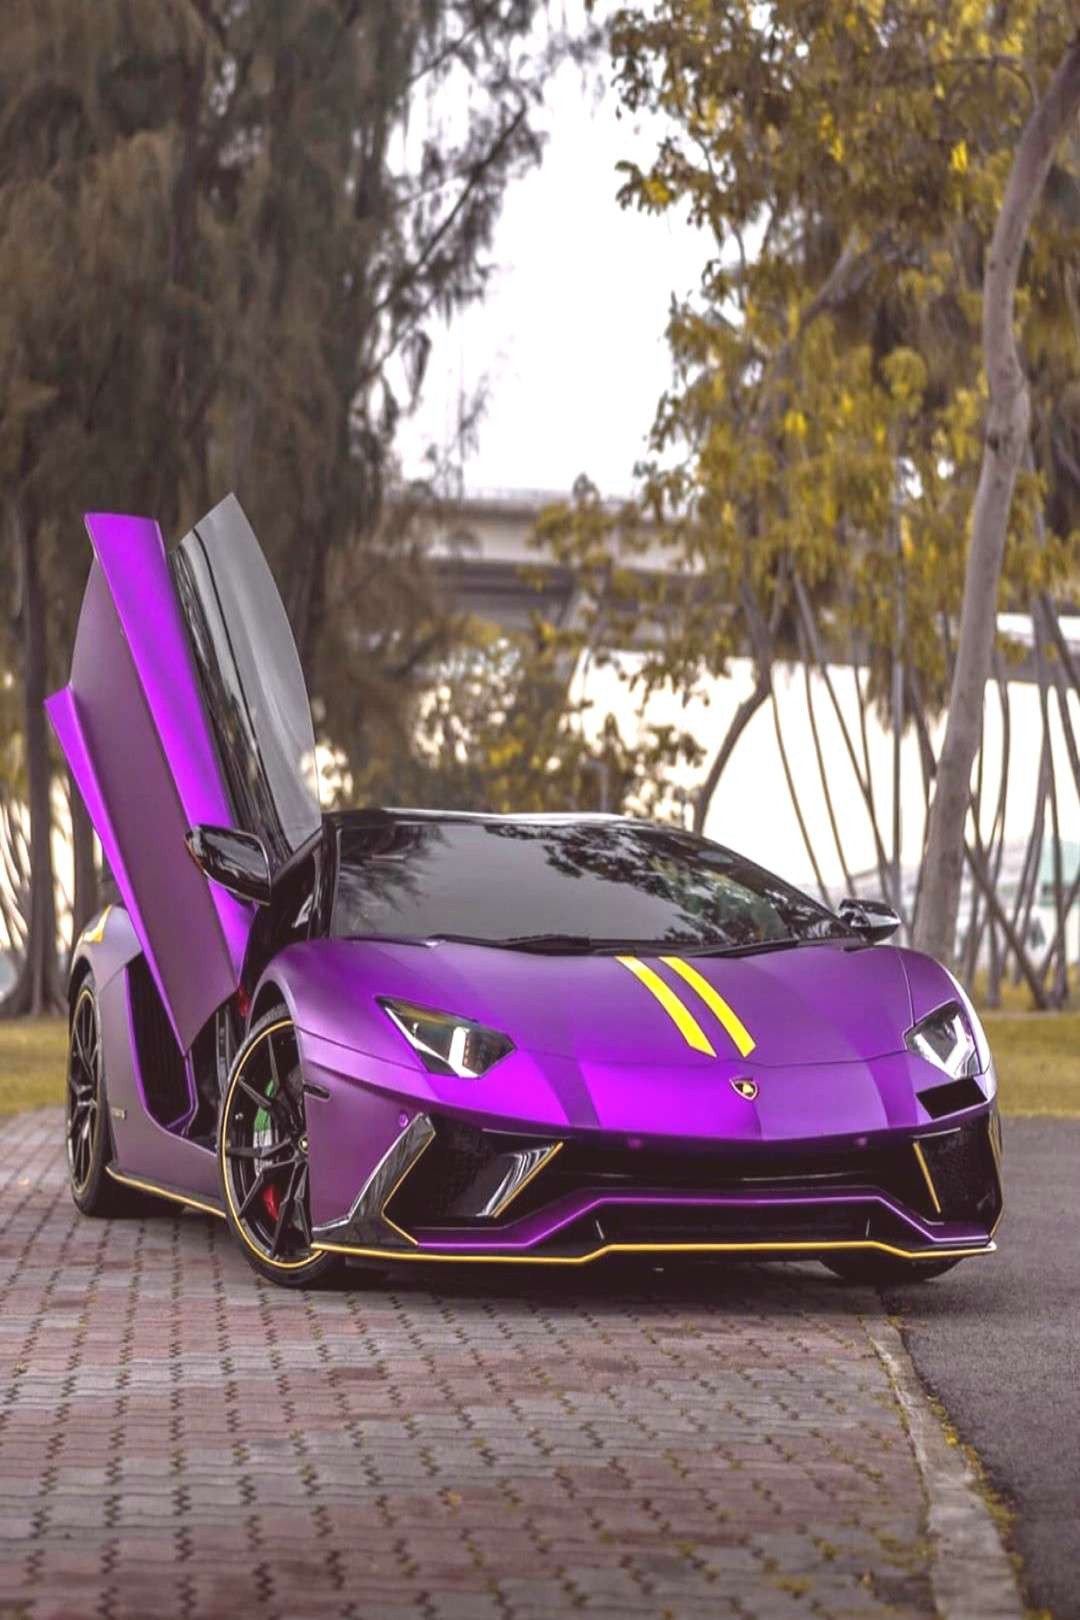 2nd Lamborghini Era Of V12 on April 21 2020 car and outdoor